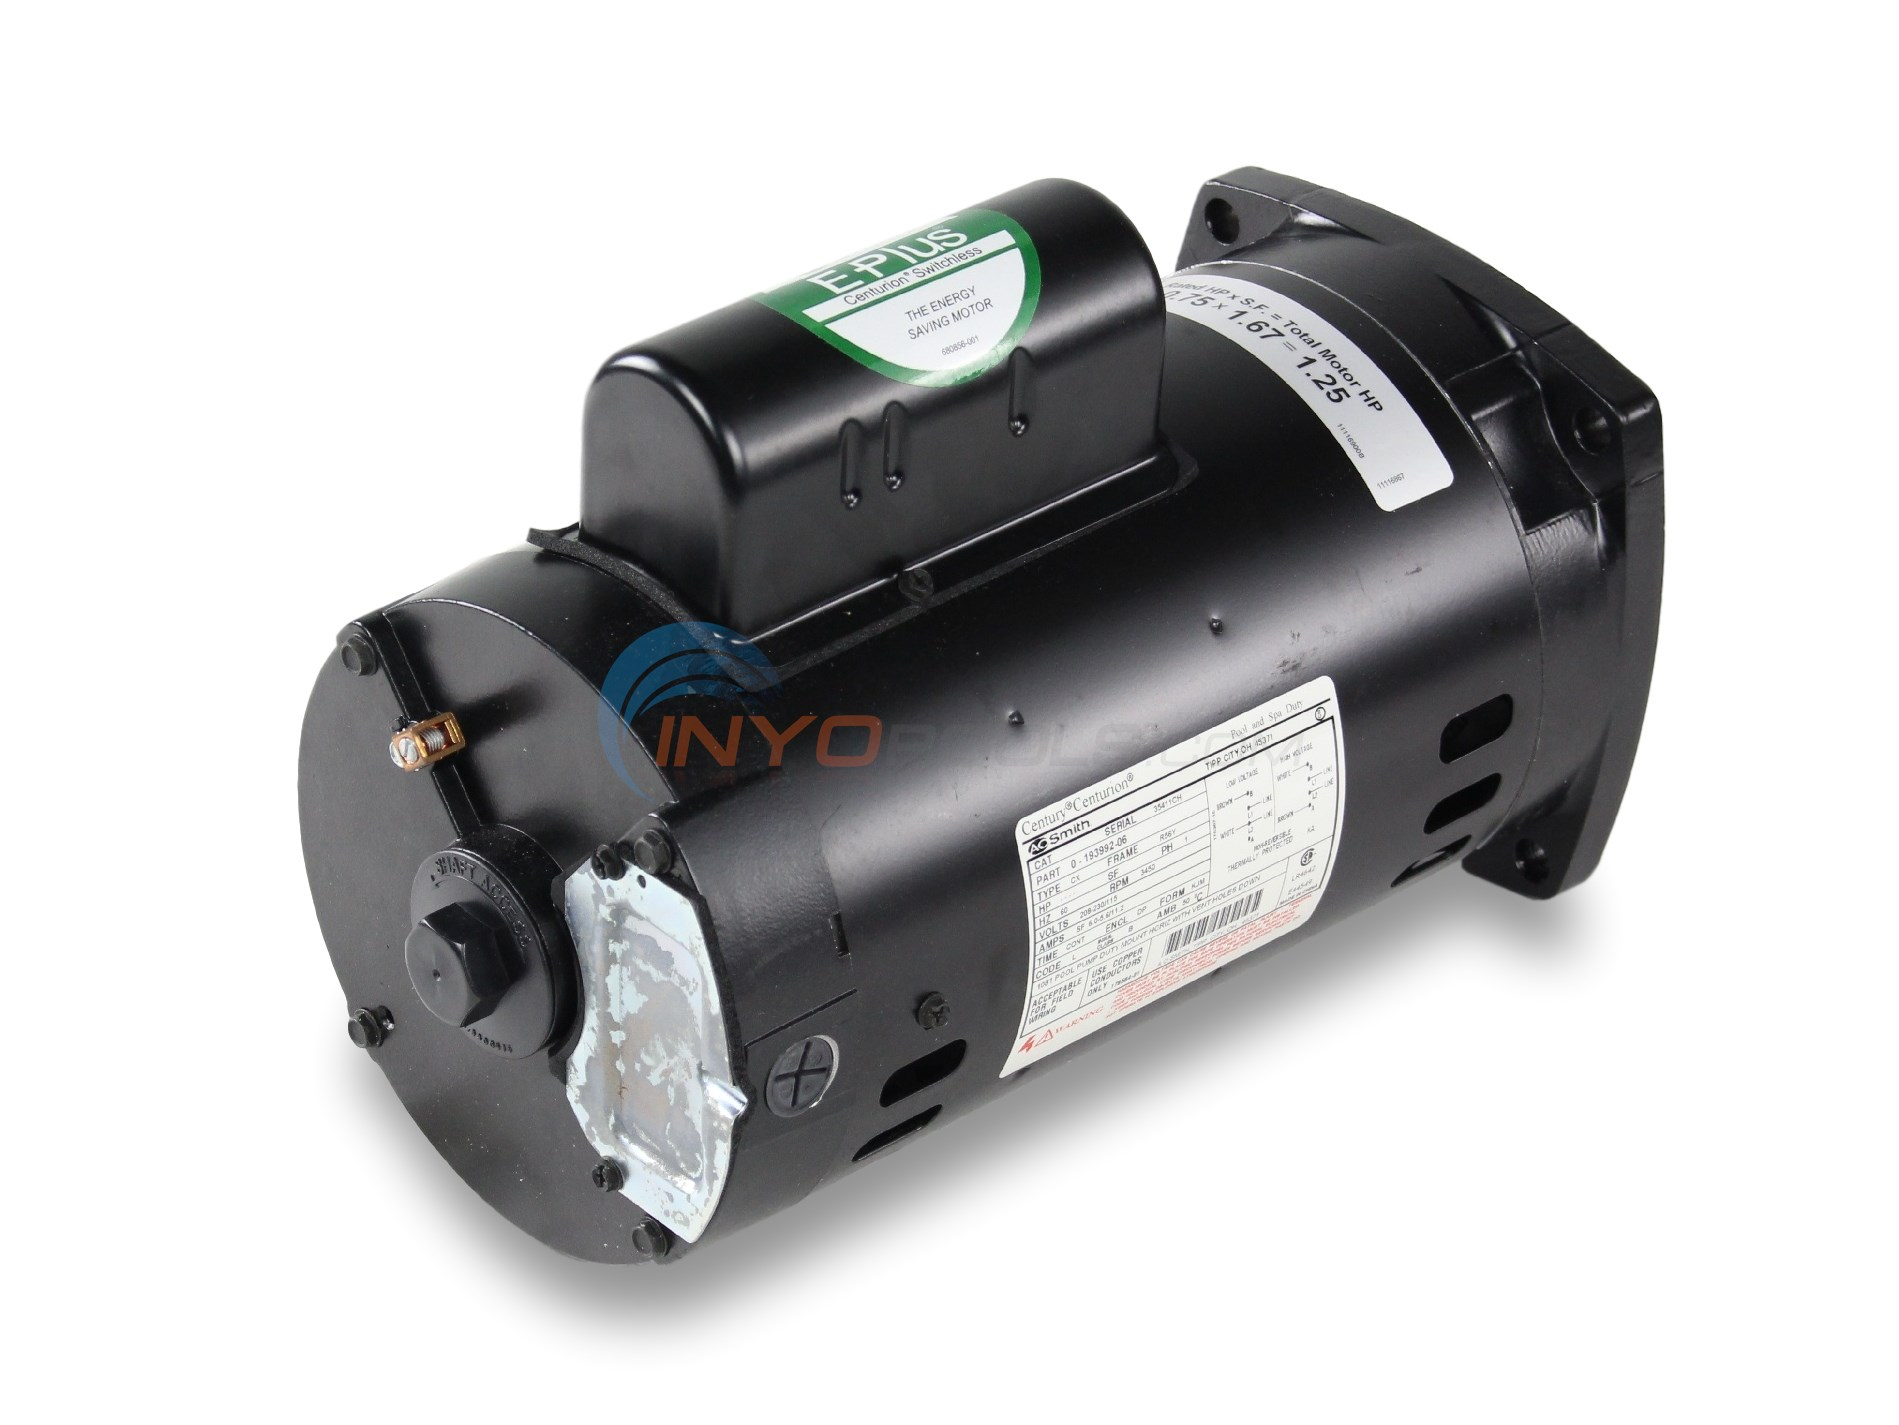 Mini Cooper S Water Pump Replacement also Simple Heat Engine likewise Control Box Wiring Diagram also NuTone Bathroom Exhaust Fan Motor Replacement in addition Bathroom Exhaust Fan With Light Wiring Diagram. on ao smith motors replacement